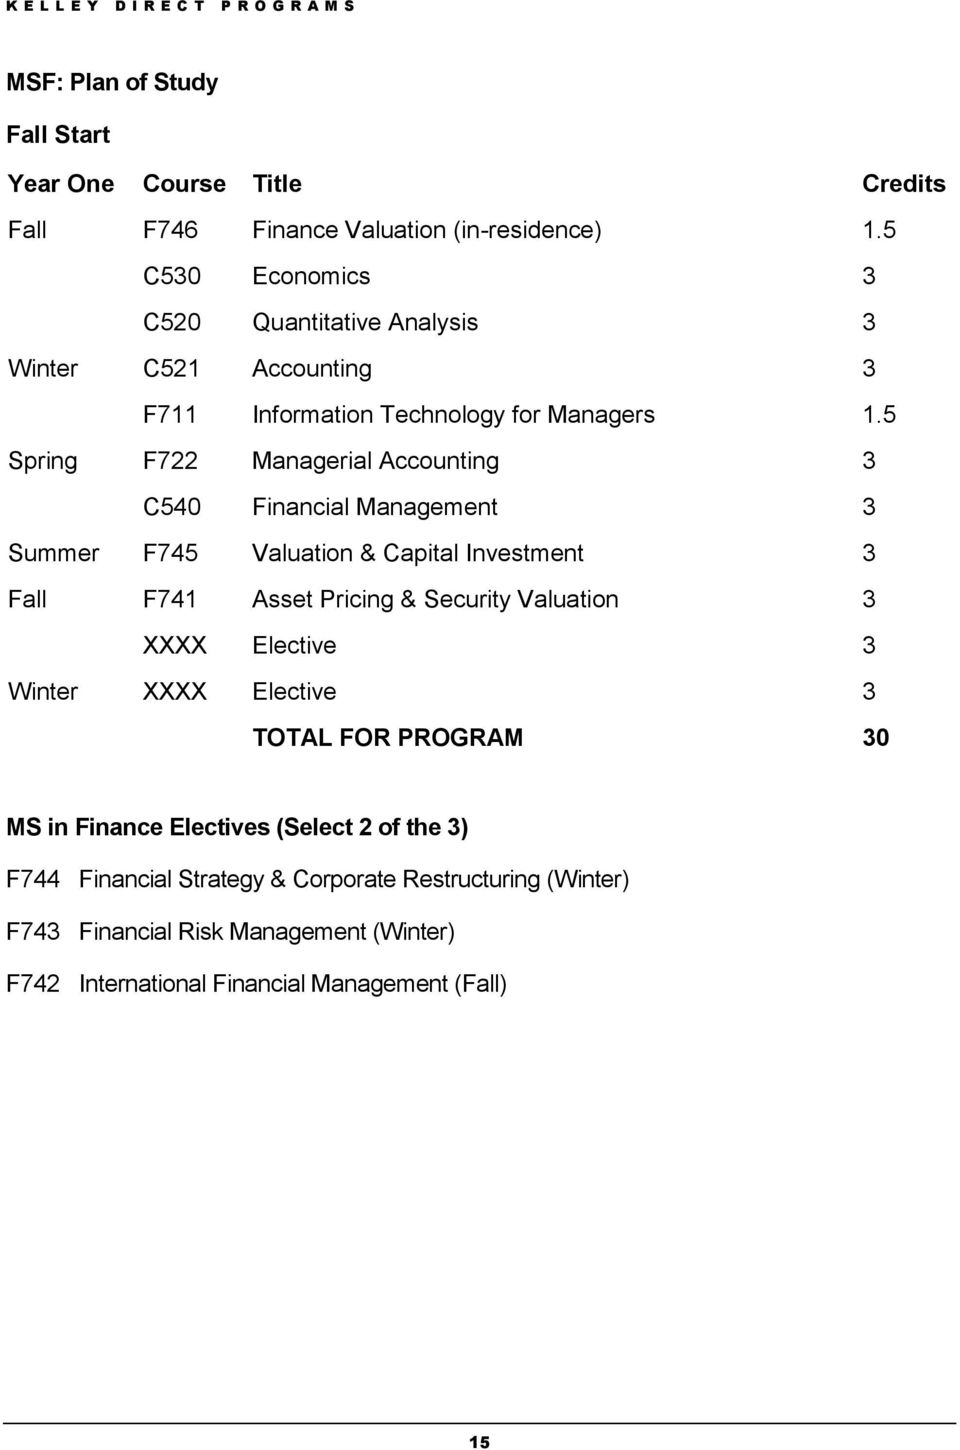 5 Spring F722 Managerial Accounting 3 C540 Financial Management 3 Summer F745 Valuation & Capital Investment 3 Fall F741 Asset Pricing & Security Valuation 3